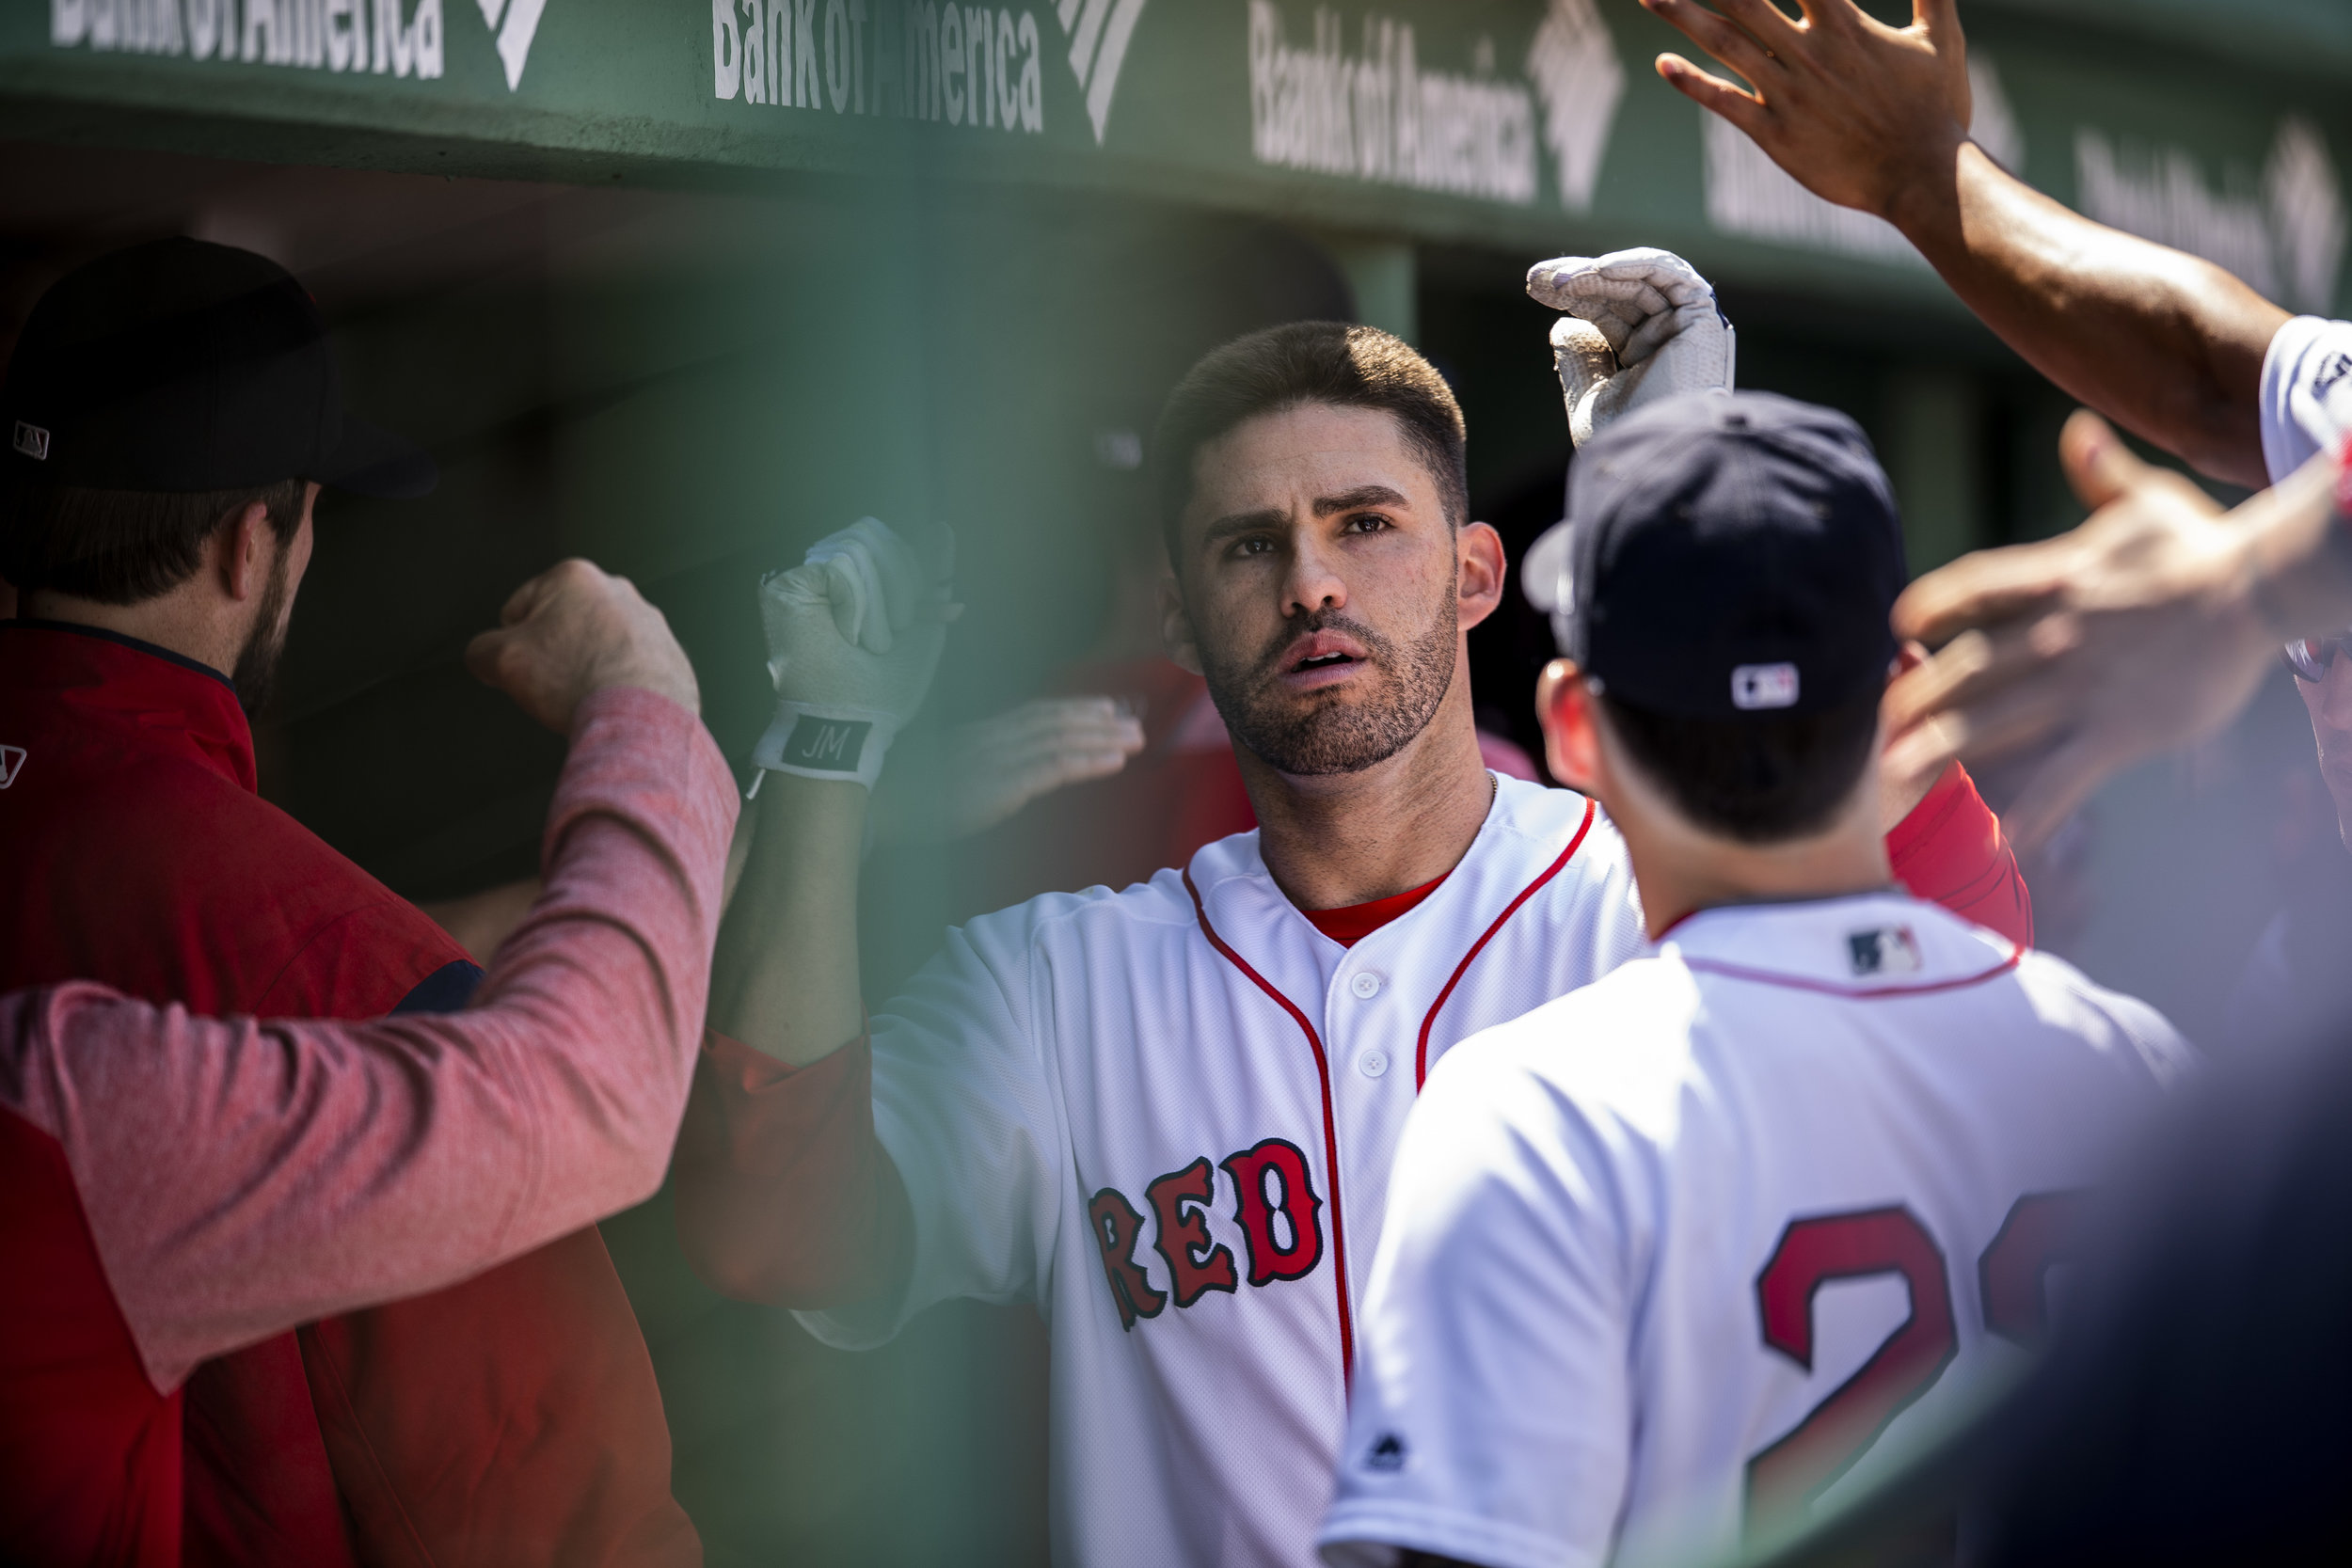 May 2, 2018, Boston, MA: Boston Red Sox designated hitter J.D. Martinez  celebrates in the dugout after he hit a home run as the Boston Red Sox face the Kansas City Royals at Fenway Park in Boston, Massachusetts Wednesday, May 2, 2018. (Photo by Matthew Thomas/Boston Red Sox)